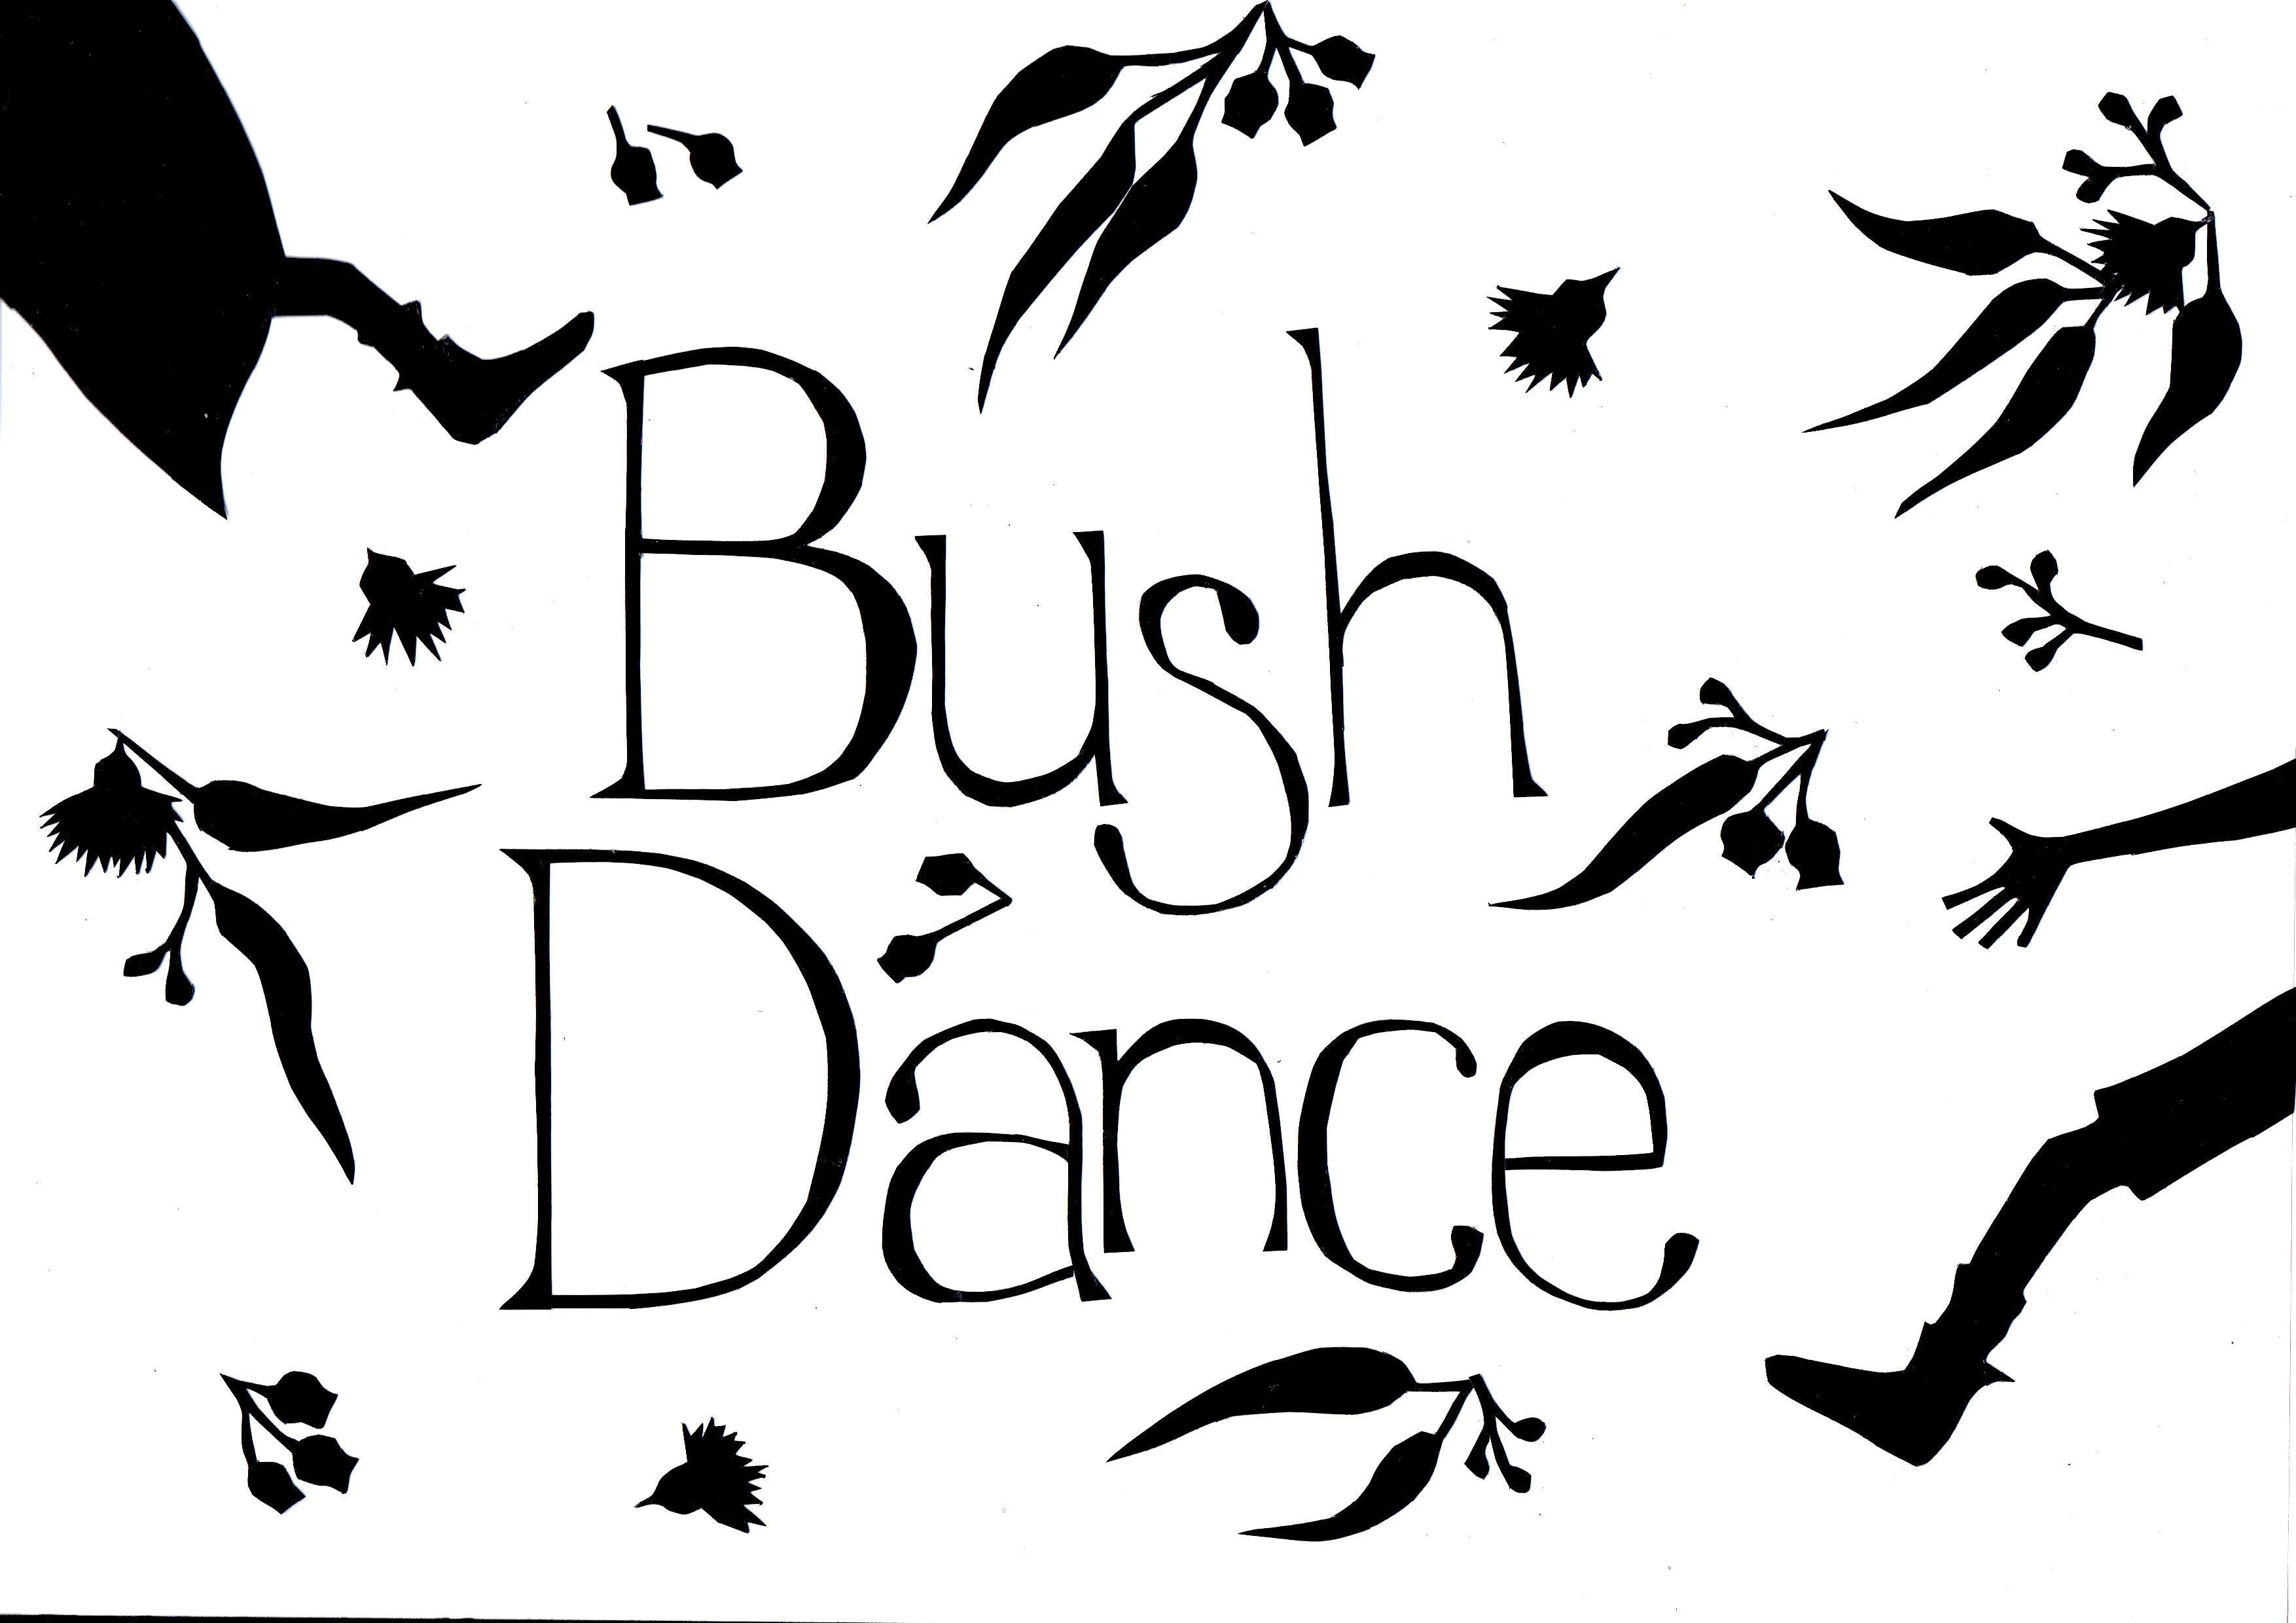 Bush Dance, in support of the Asylum Seeker Welcome Centre